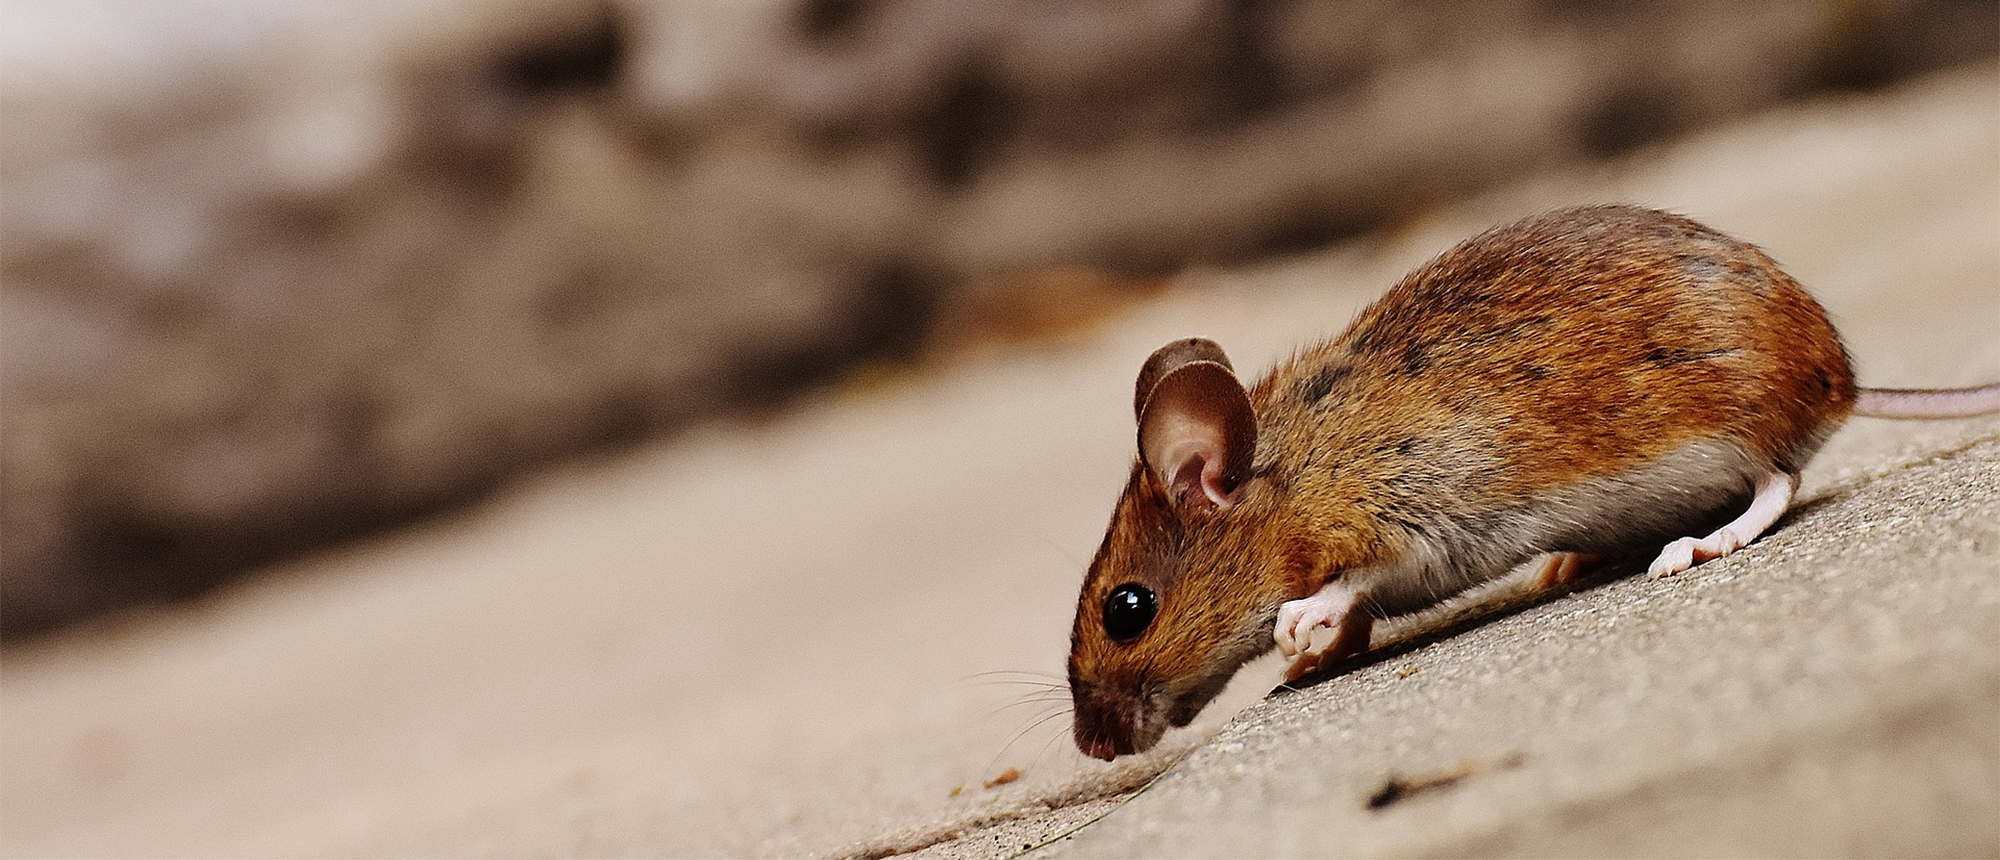 Rodent and Pest Control Information